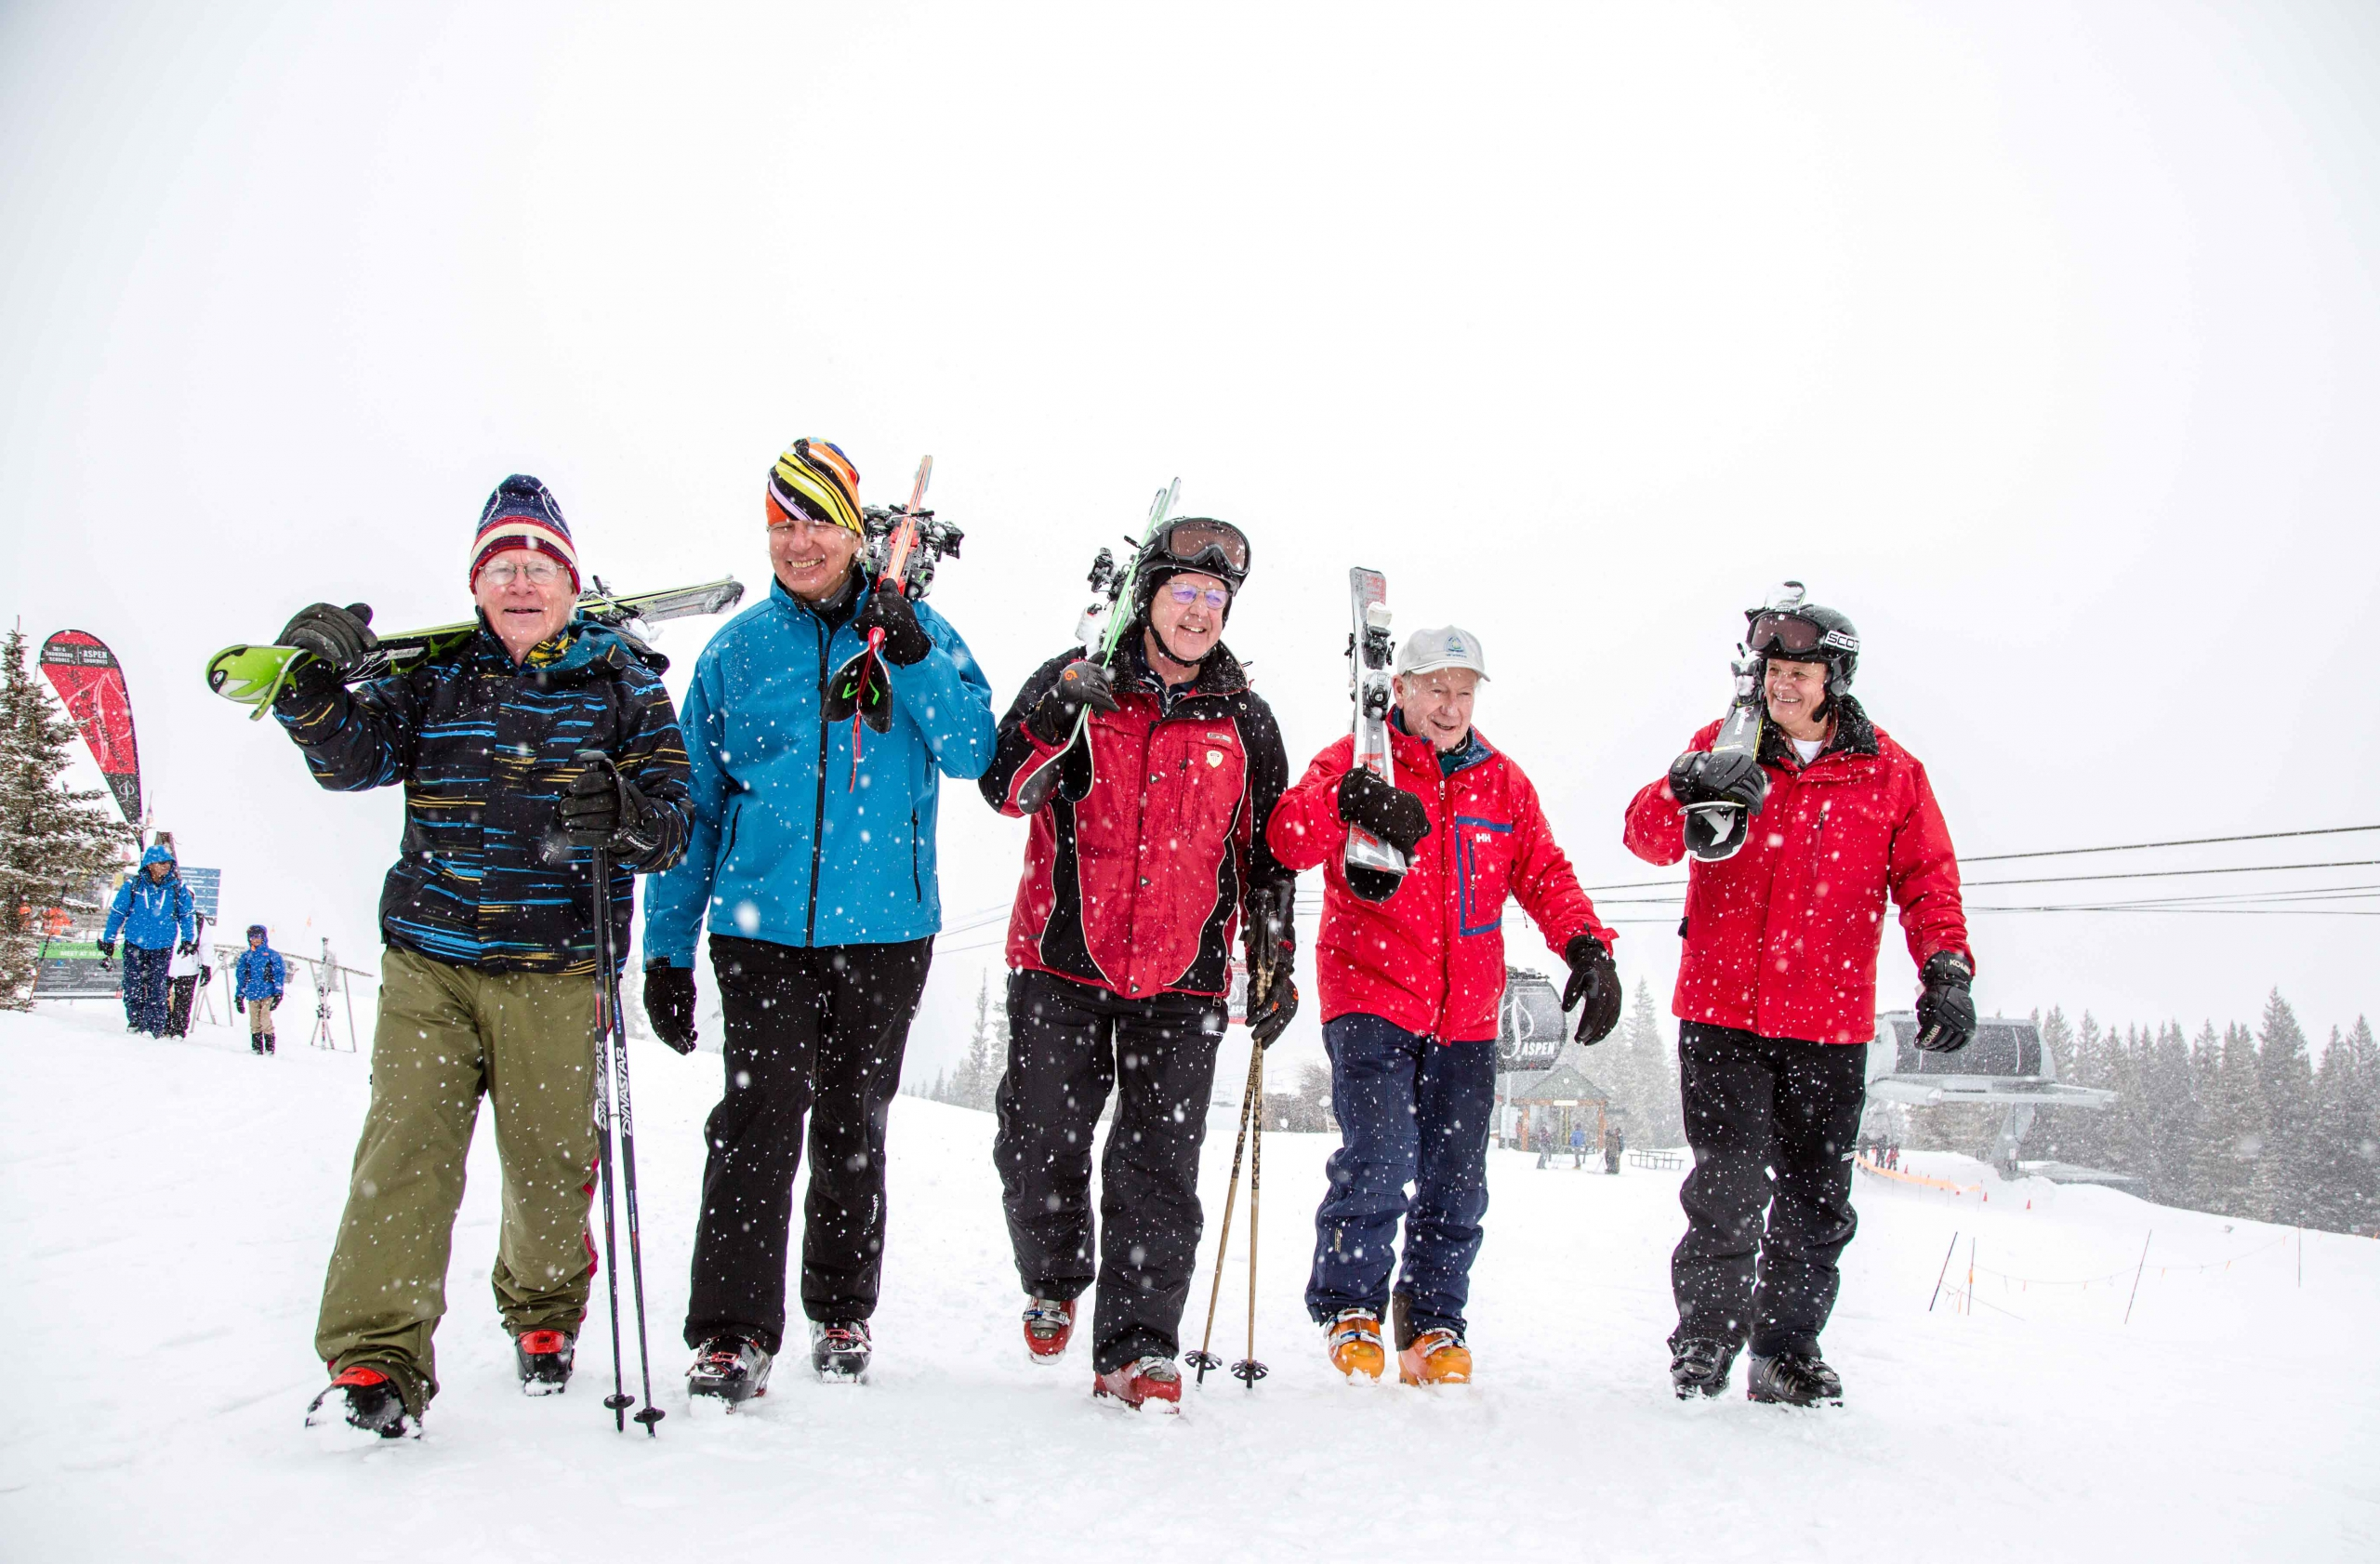 Five senior PSIA members walk from the gondola at Aspen Mountain carrying their skis over their shoulders